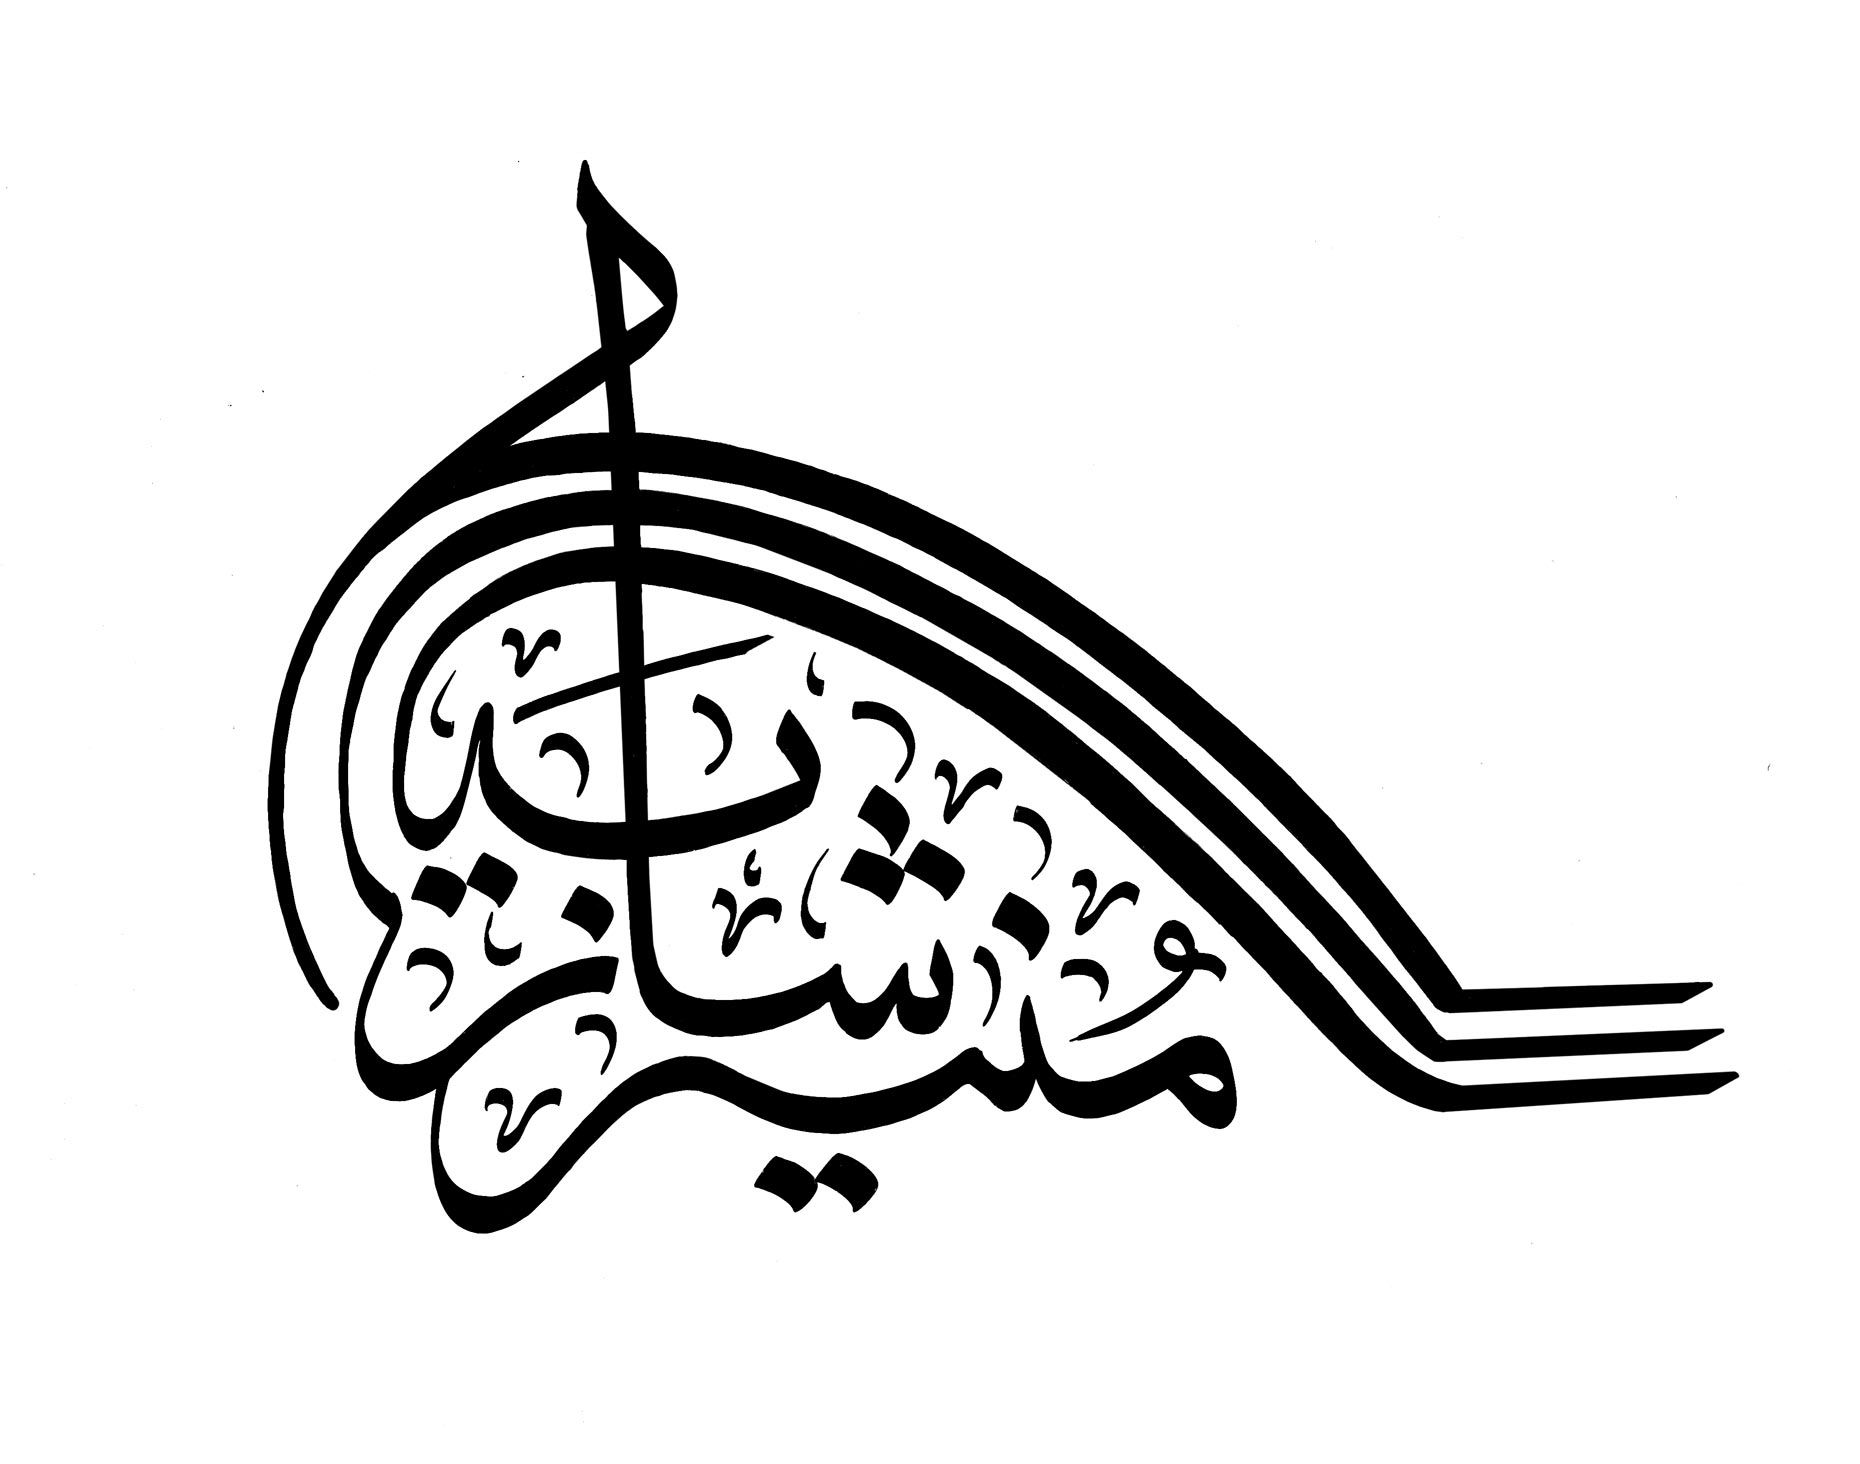 K Written In Calligraphy Javed Aslam 39s Calligraphy Urdu Calligraphy Typography